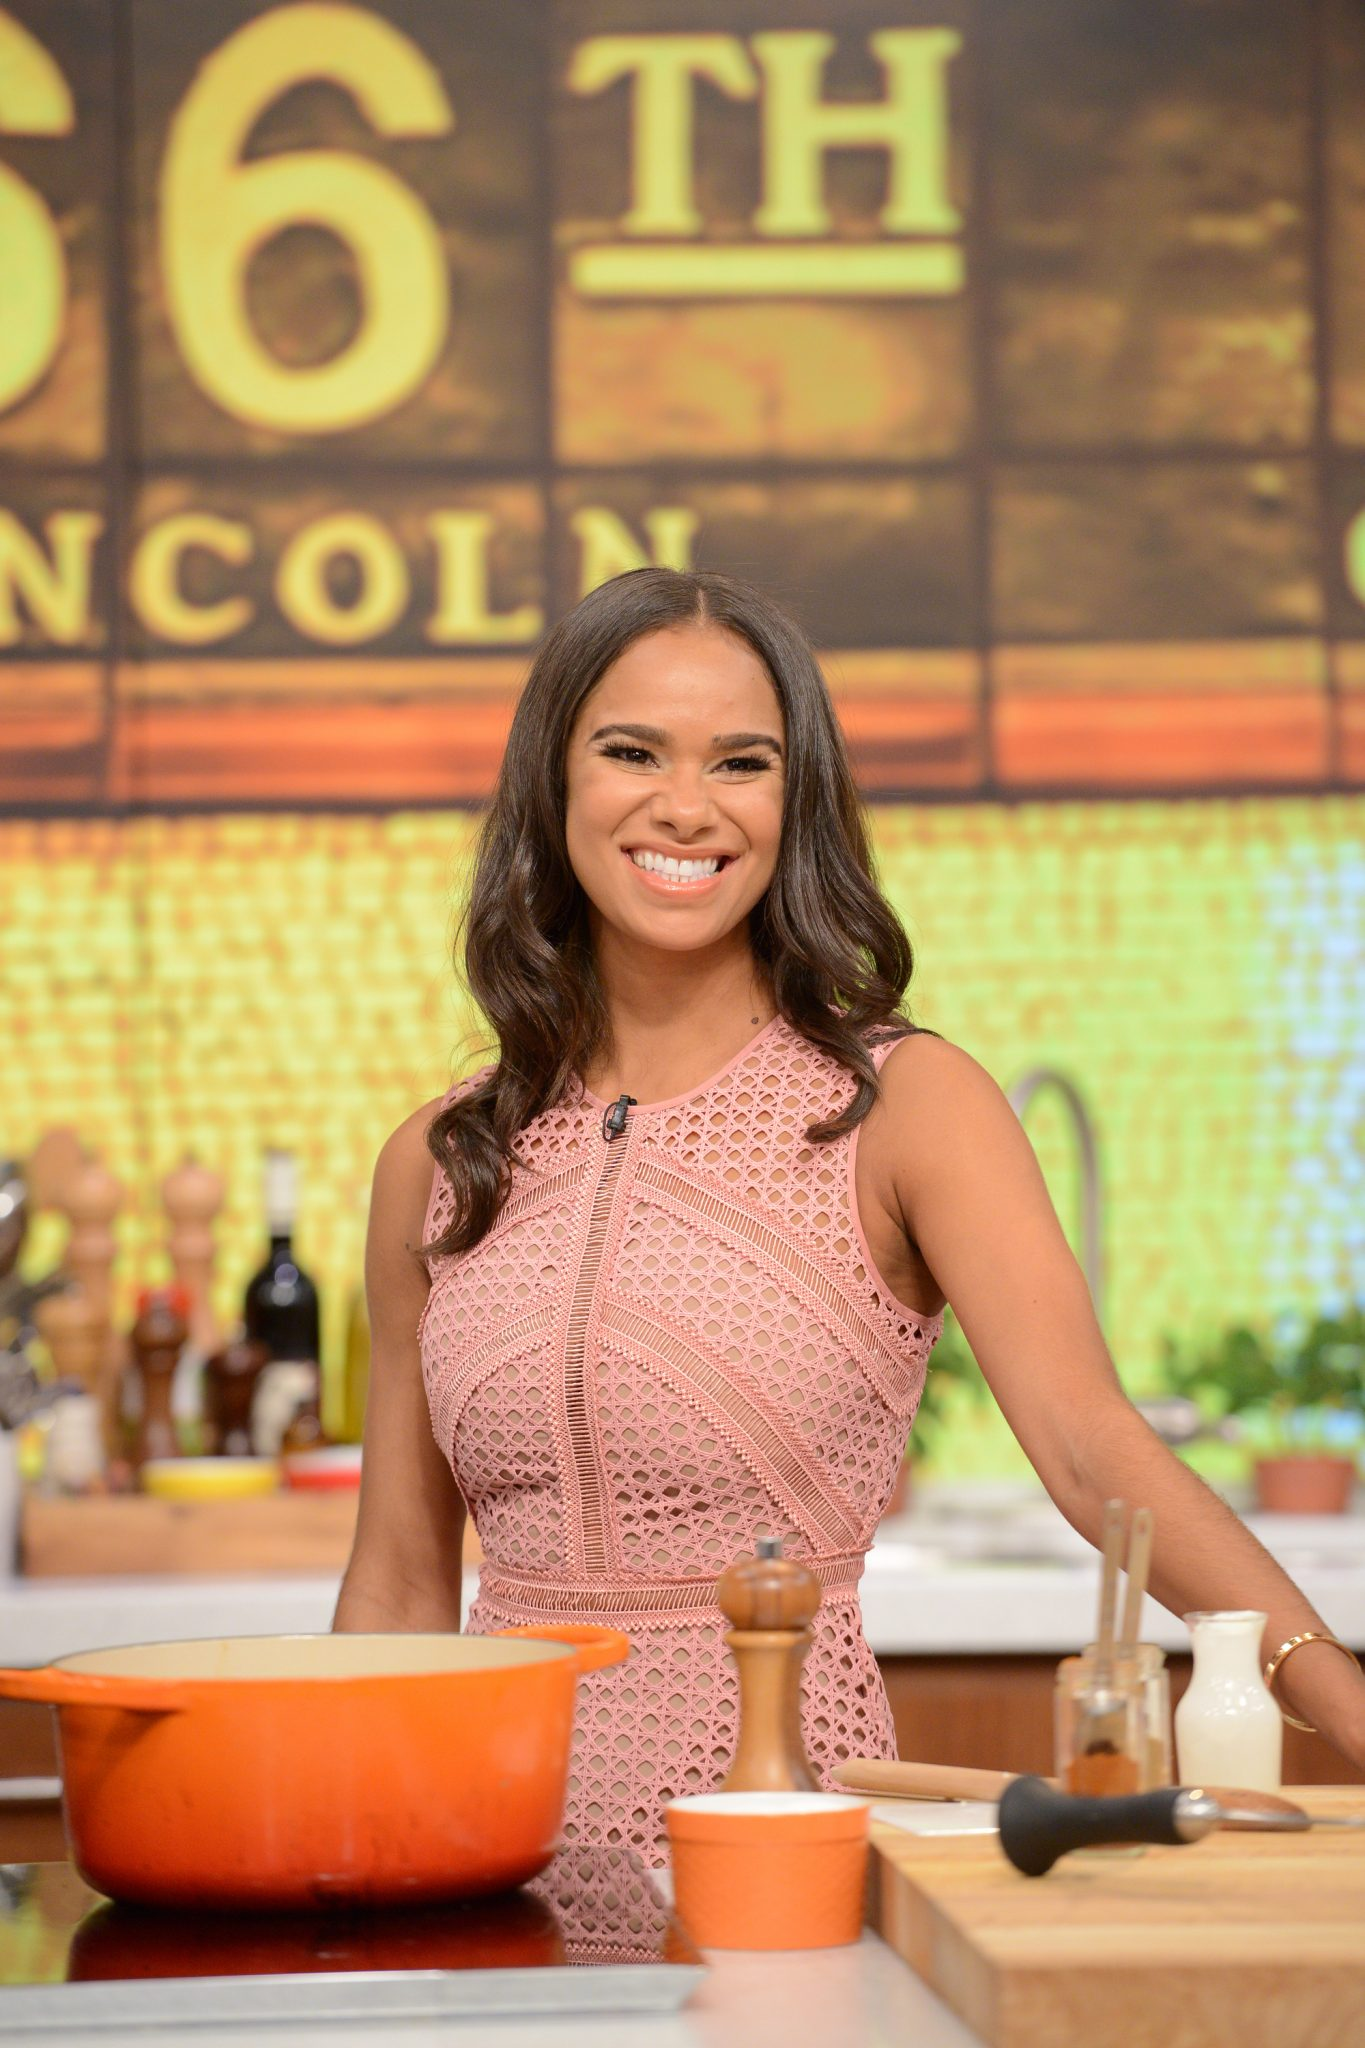 In Case You Missed It: Misty Copeland On The Chew